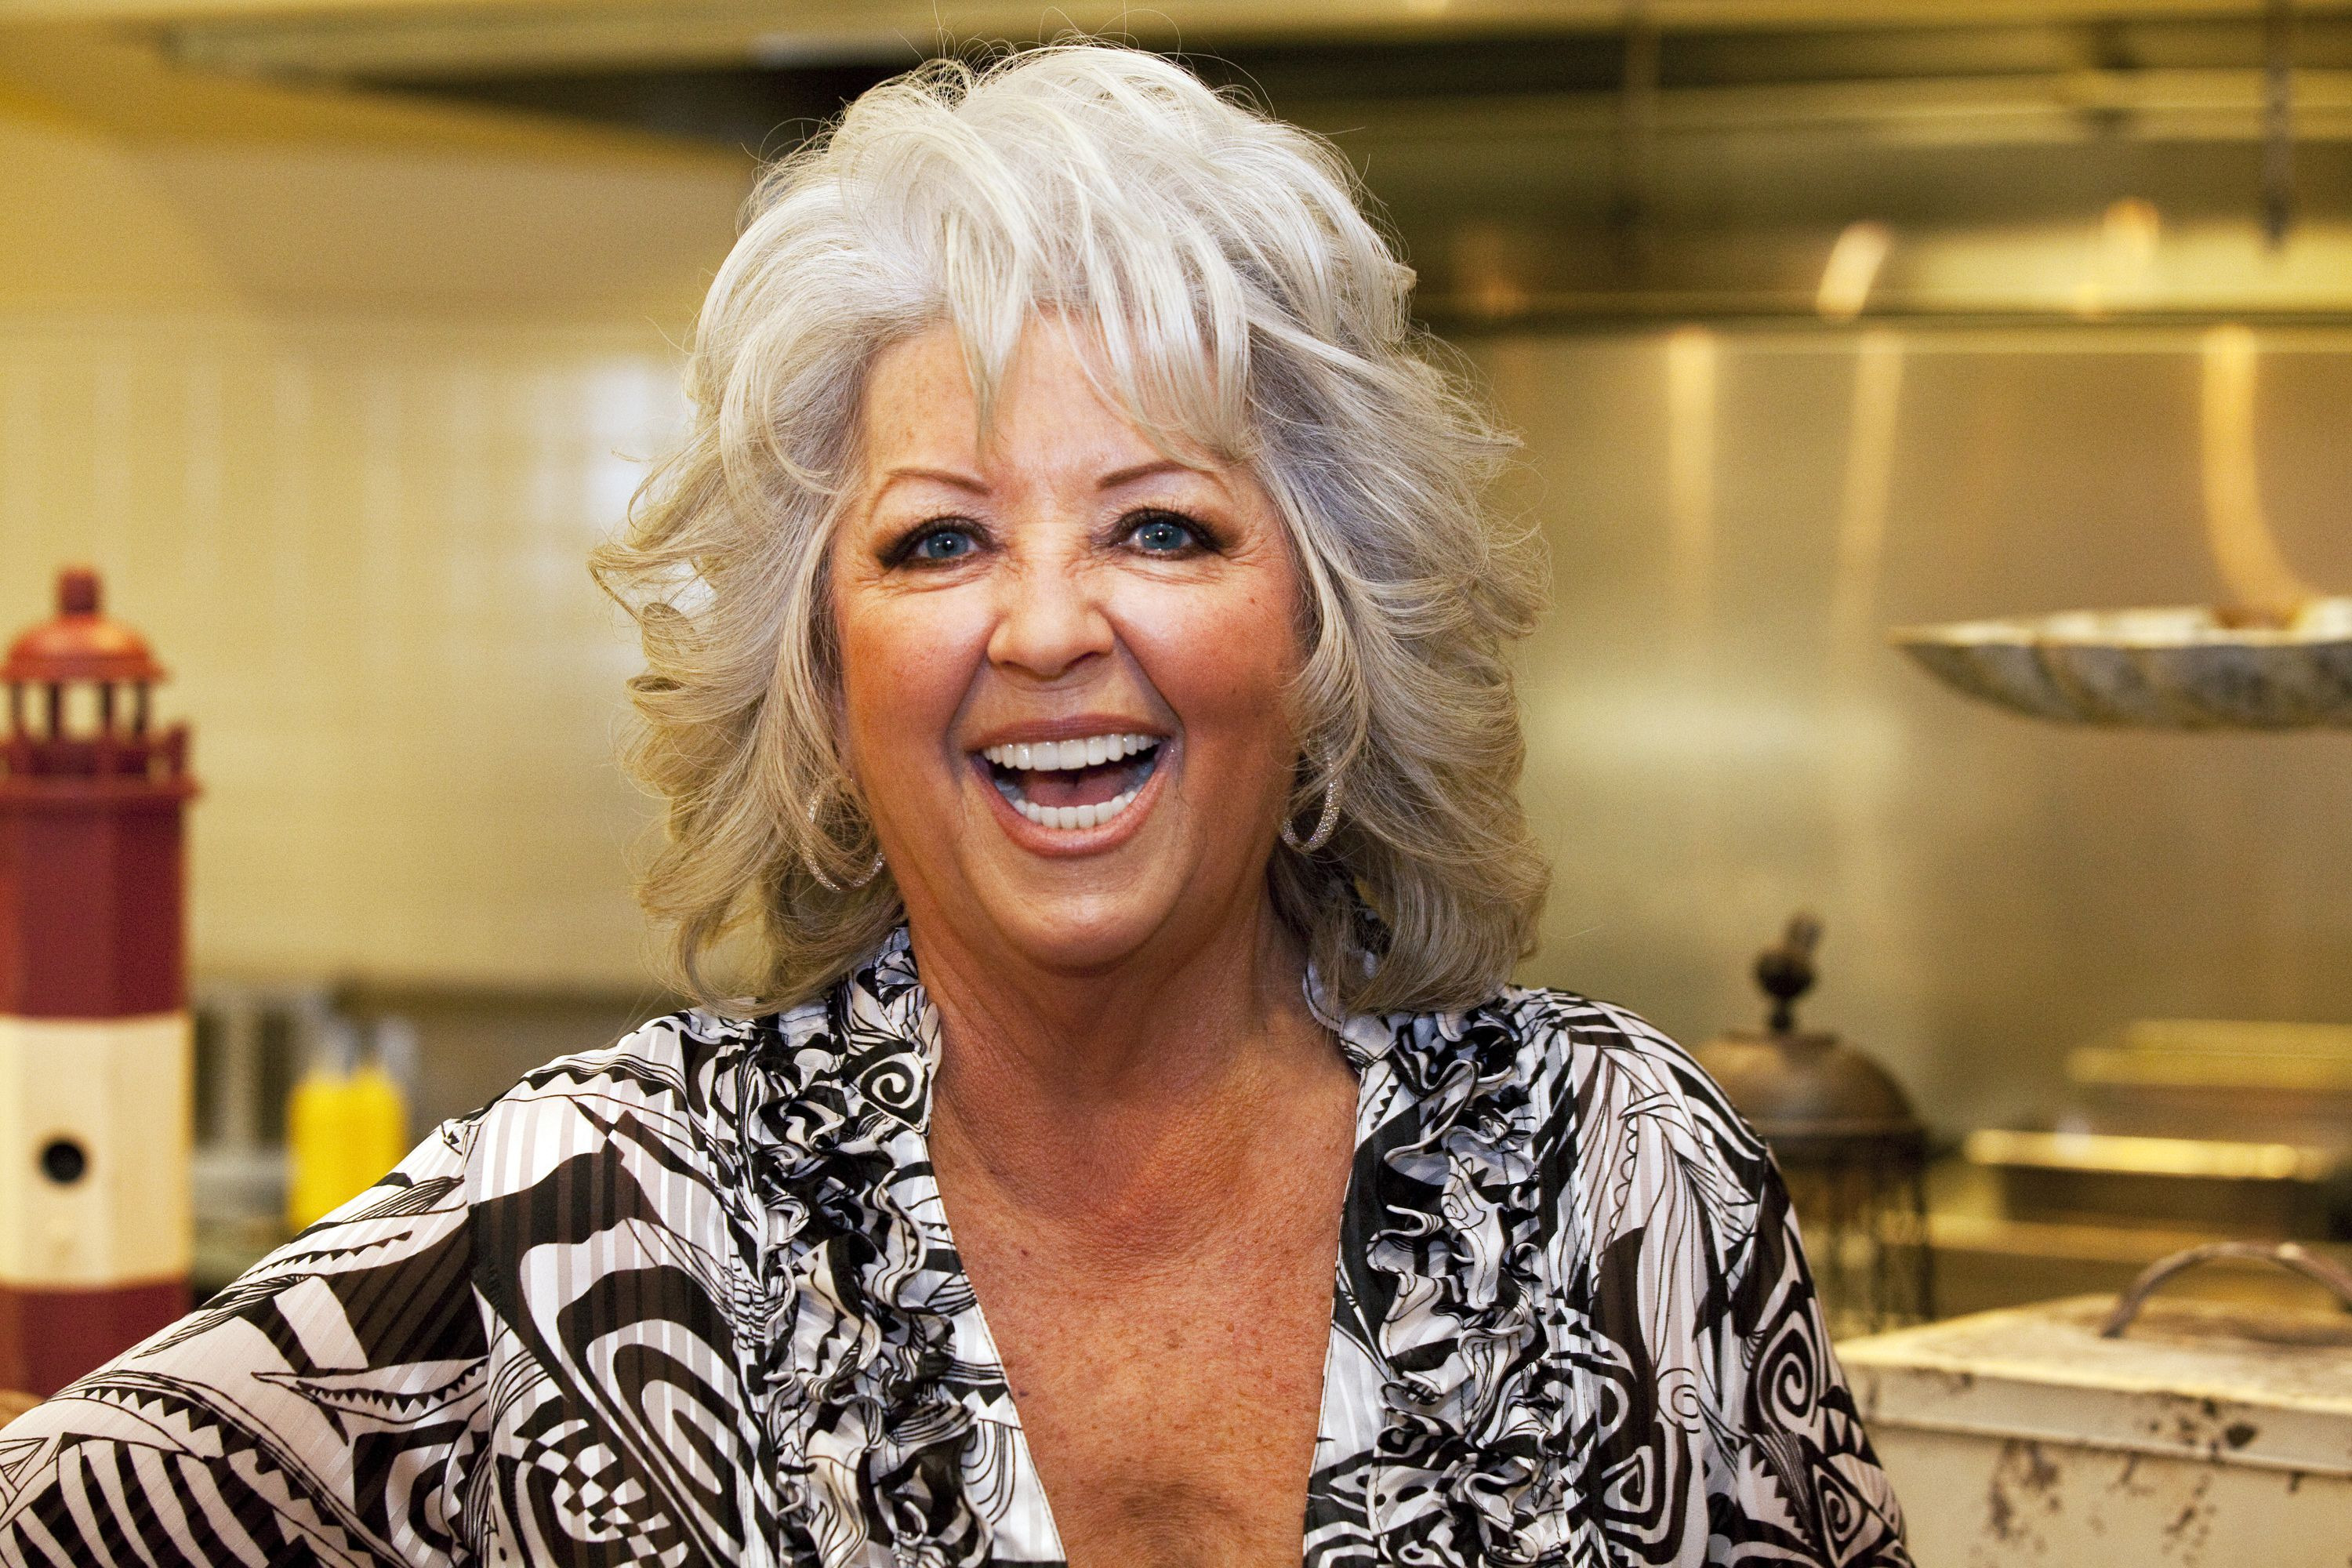 Paula Deen Facts - Things You Didn't